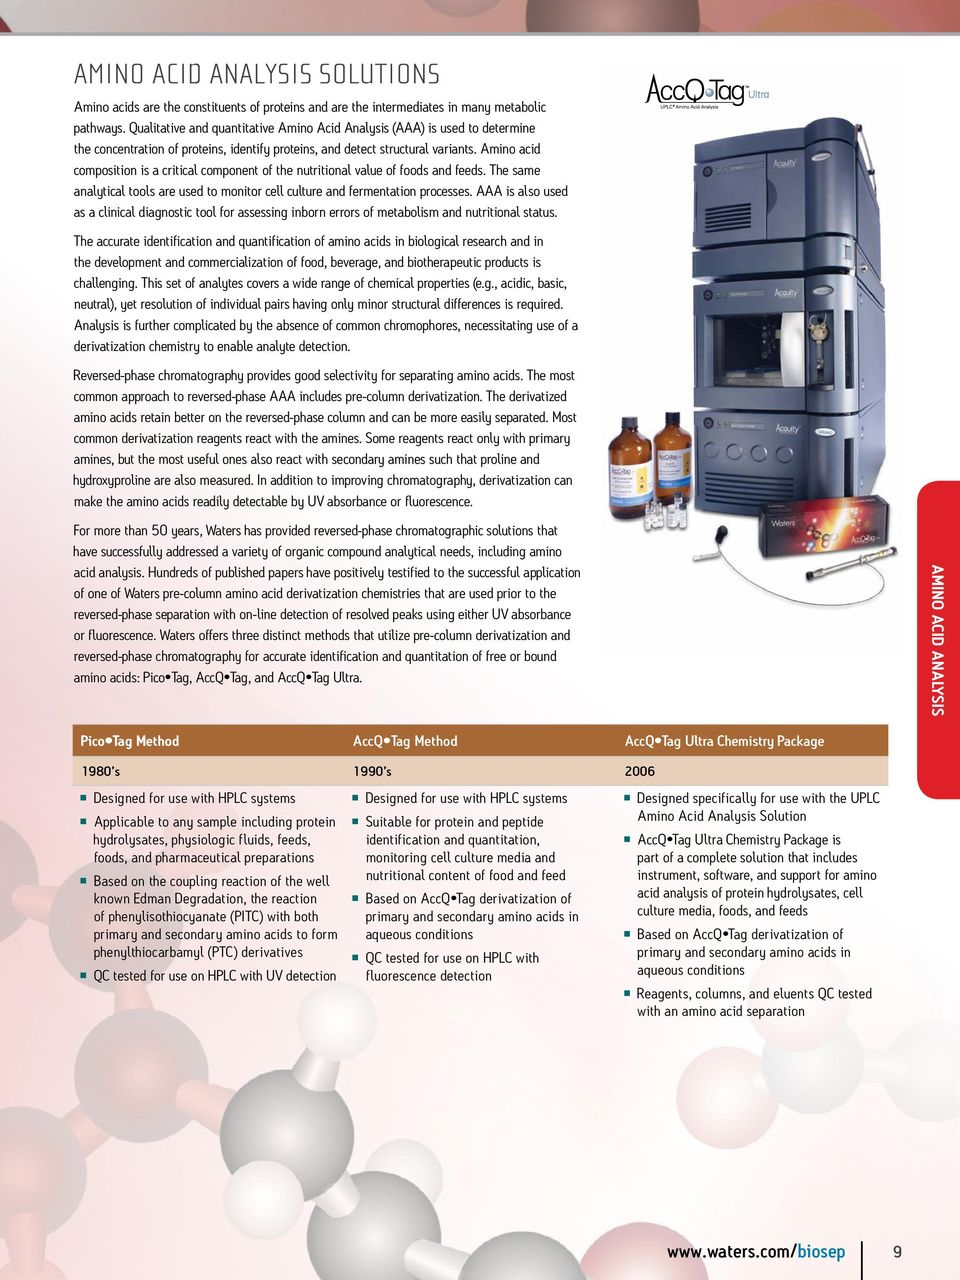 Application of uplc amino acid analysis solution to foods and.